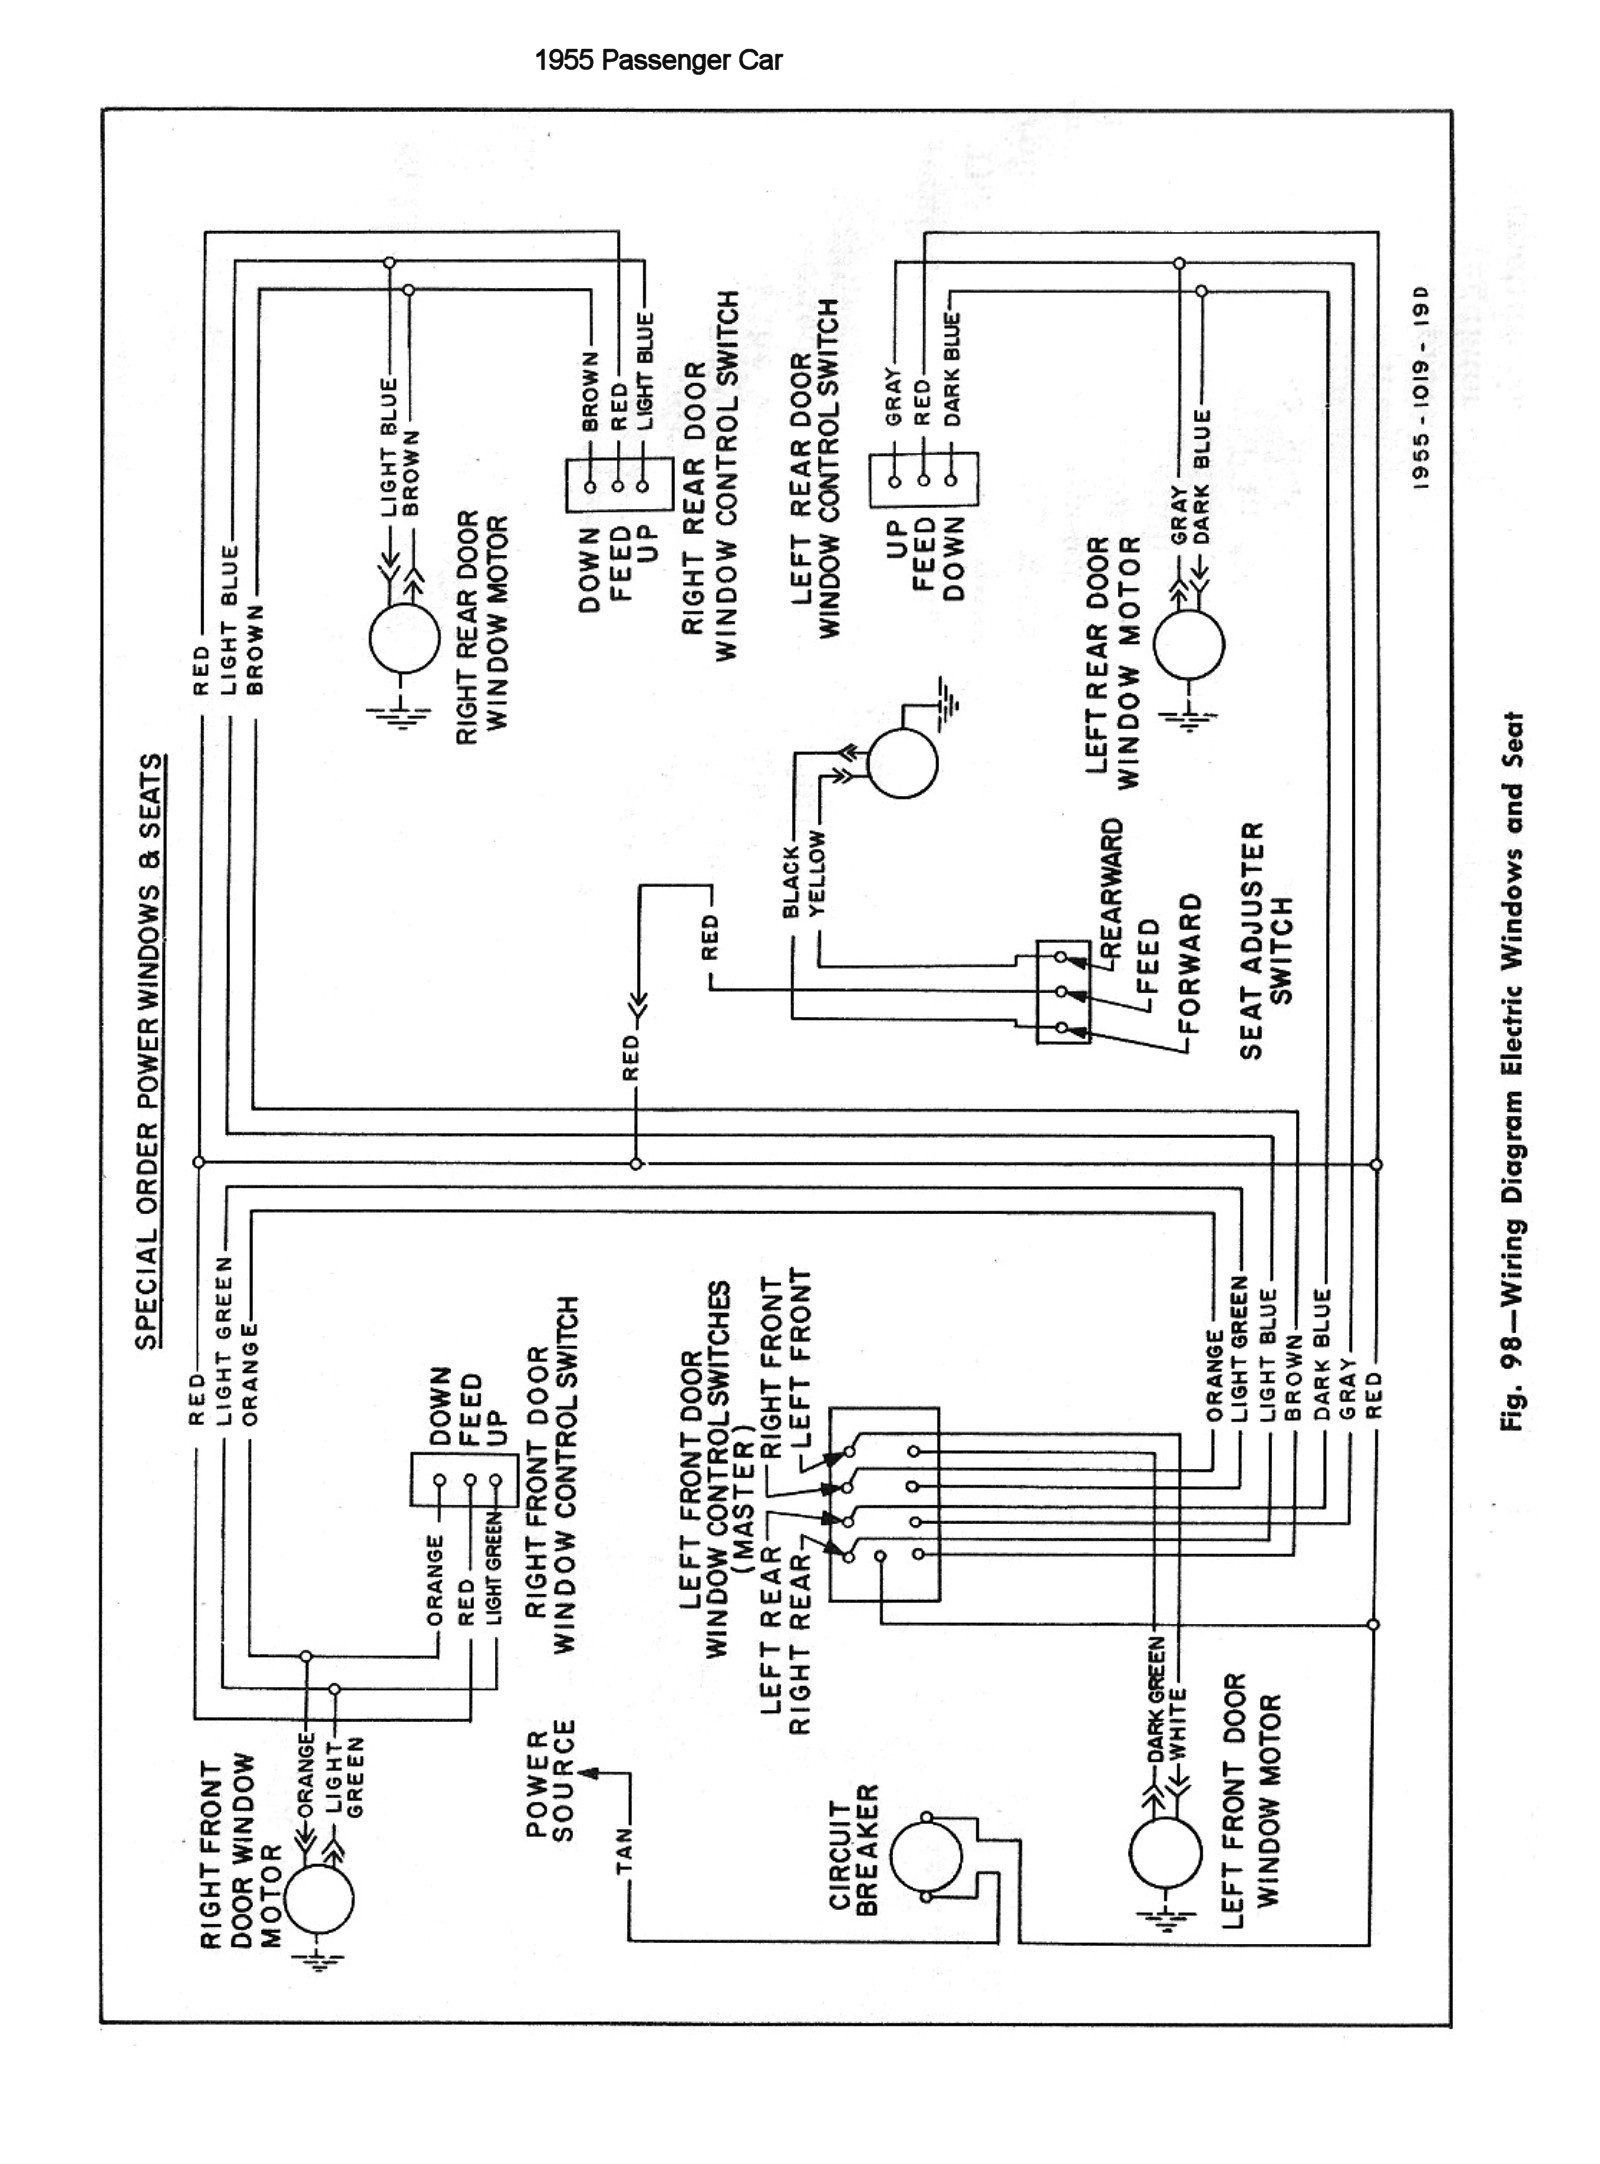 1955 Chevy Wiring Diagram 2001 Dodge Dakota Infinity Sound System Electrical Junction Box With Posts Including Fuse Panel55 Door Jam